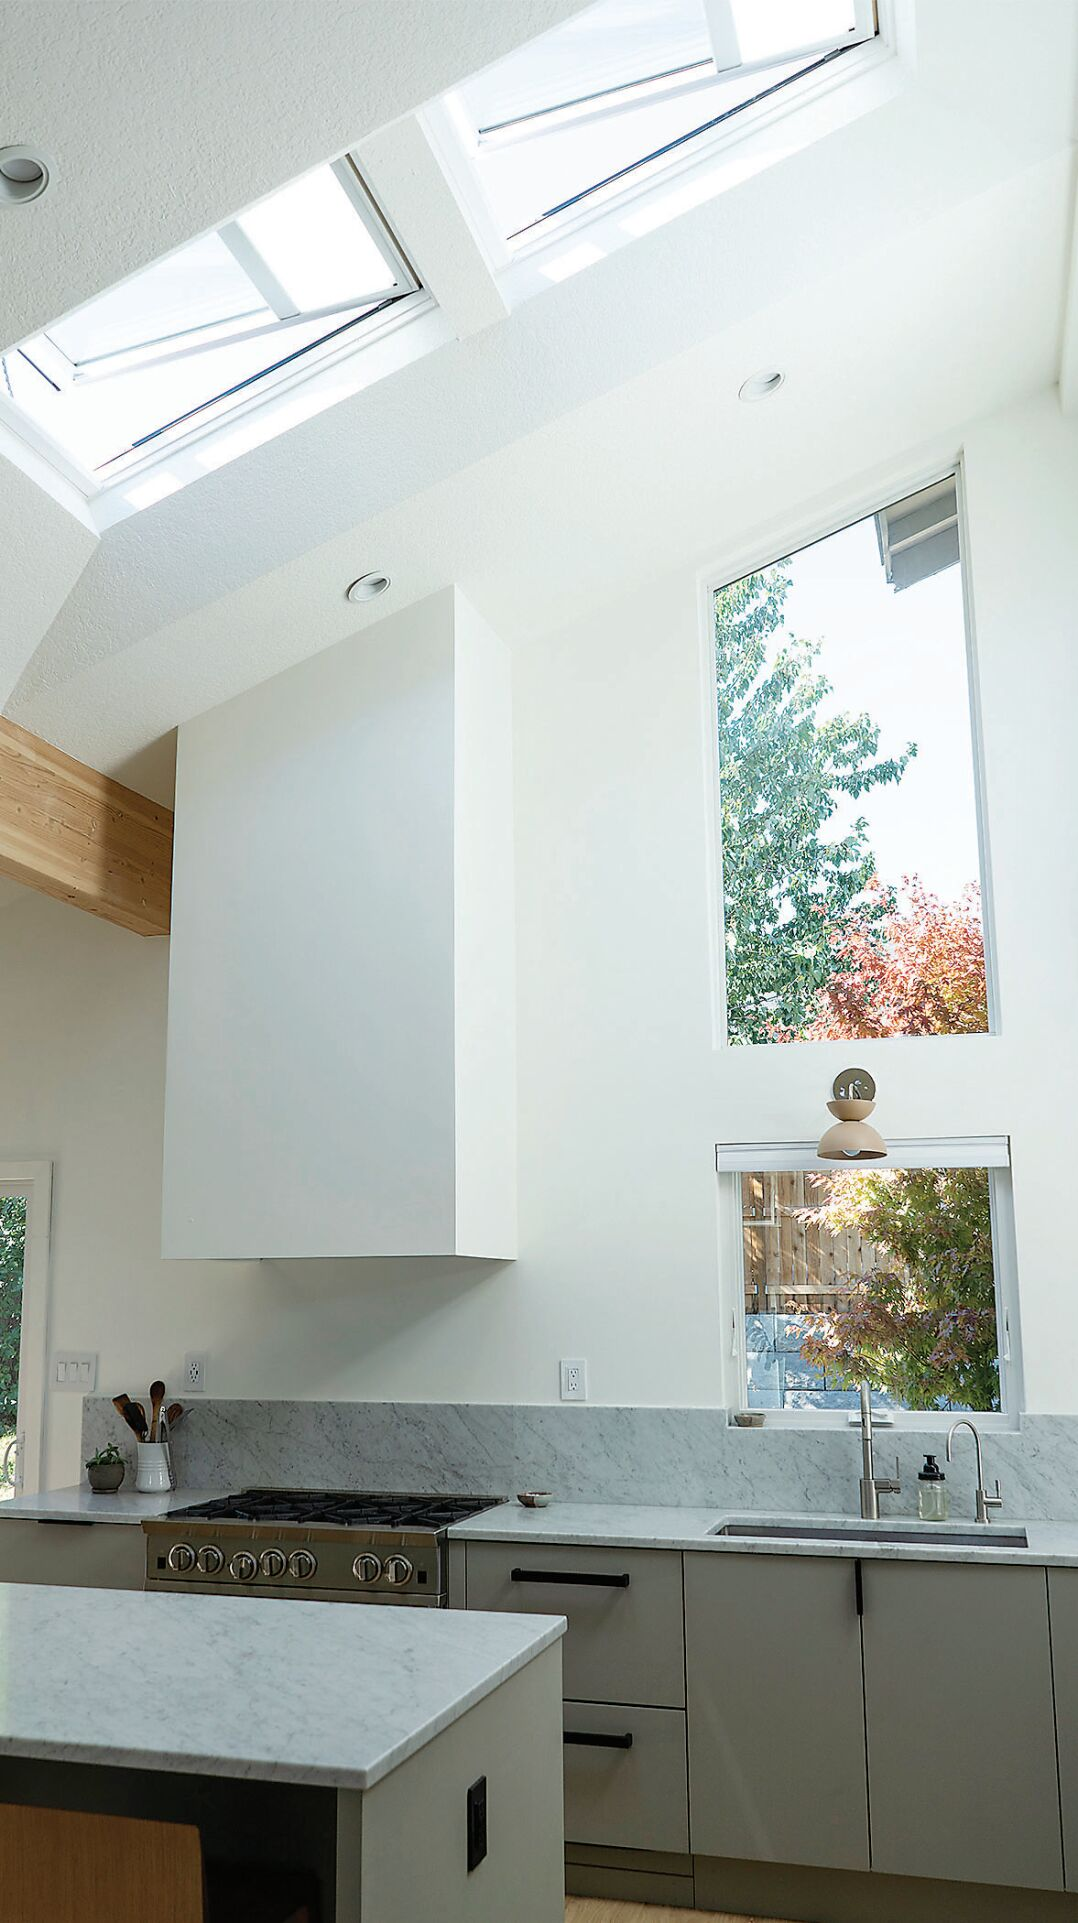 Upgrades for better indoor air quality